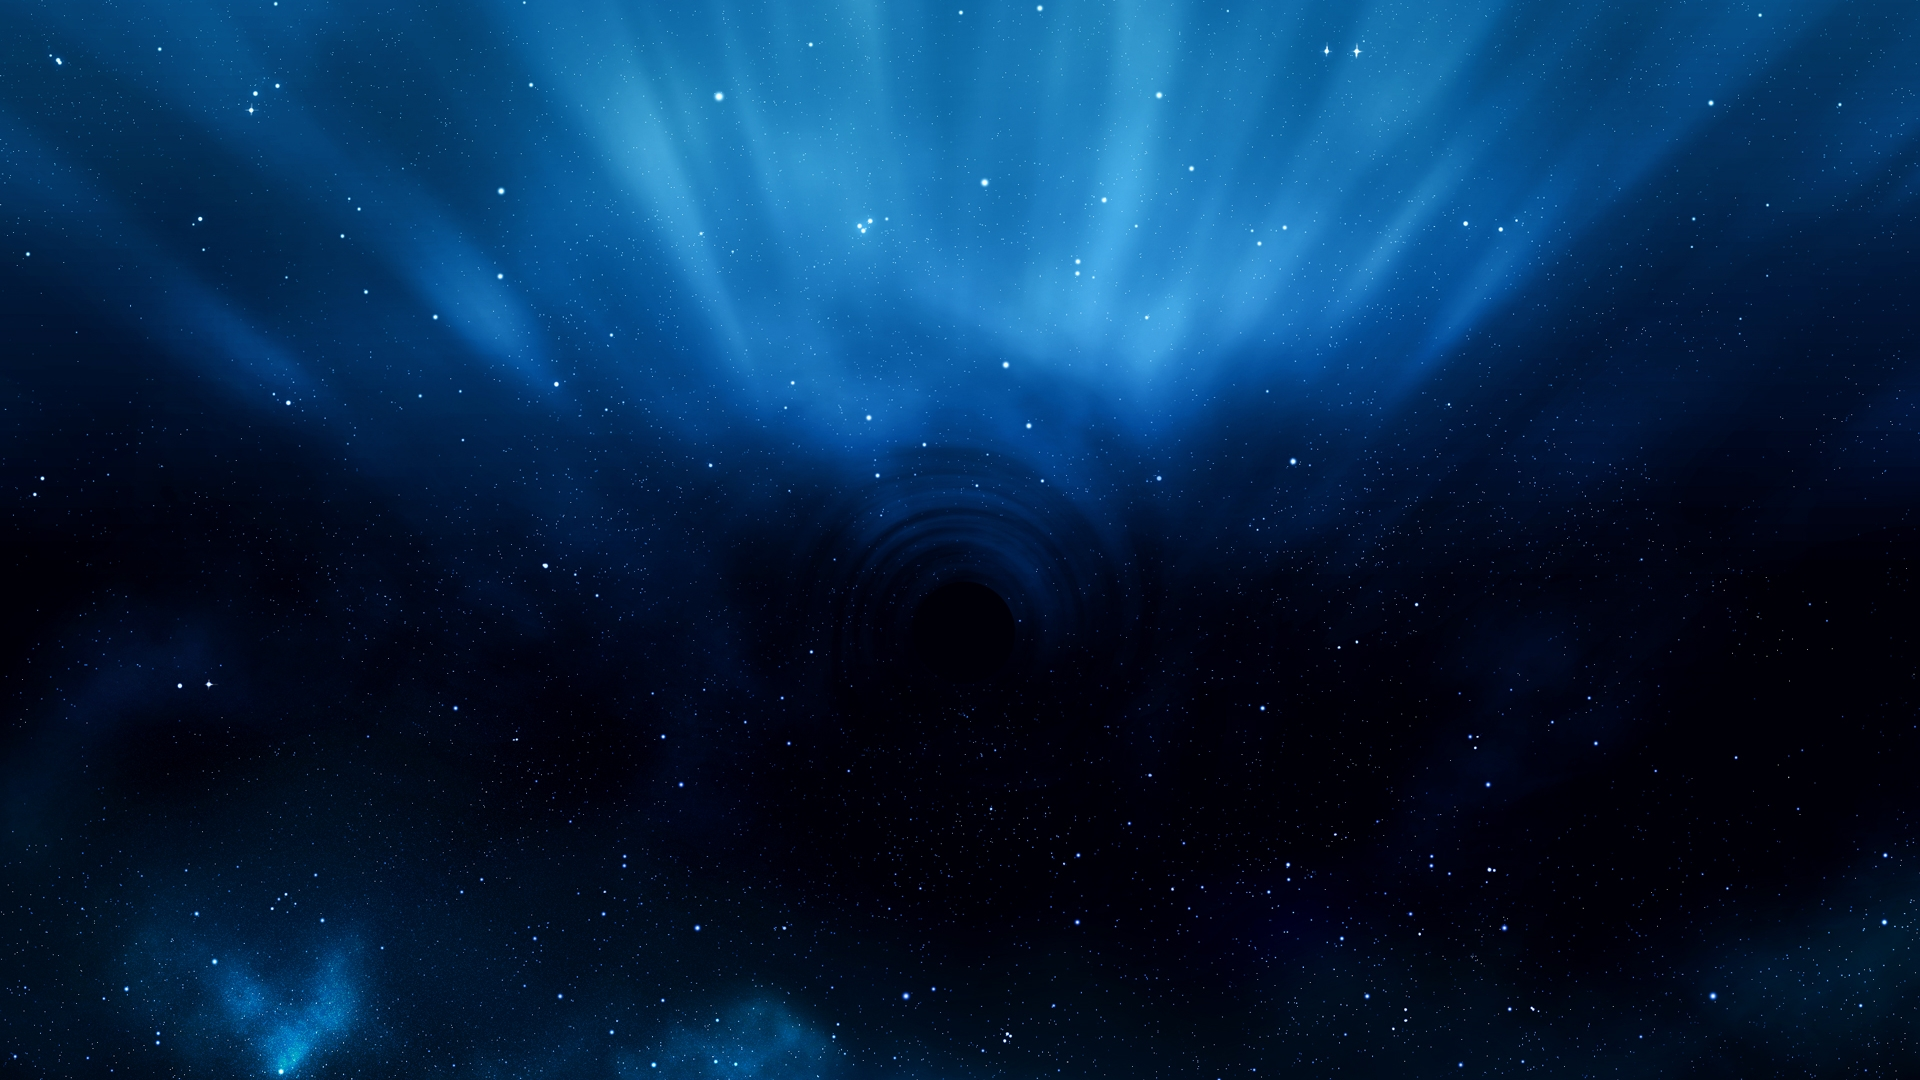 Blue space wallpaper wallpapersafari - Abstract space wallpaper ...